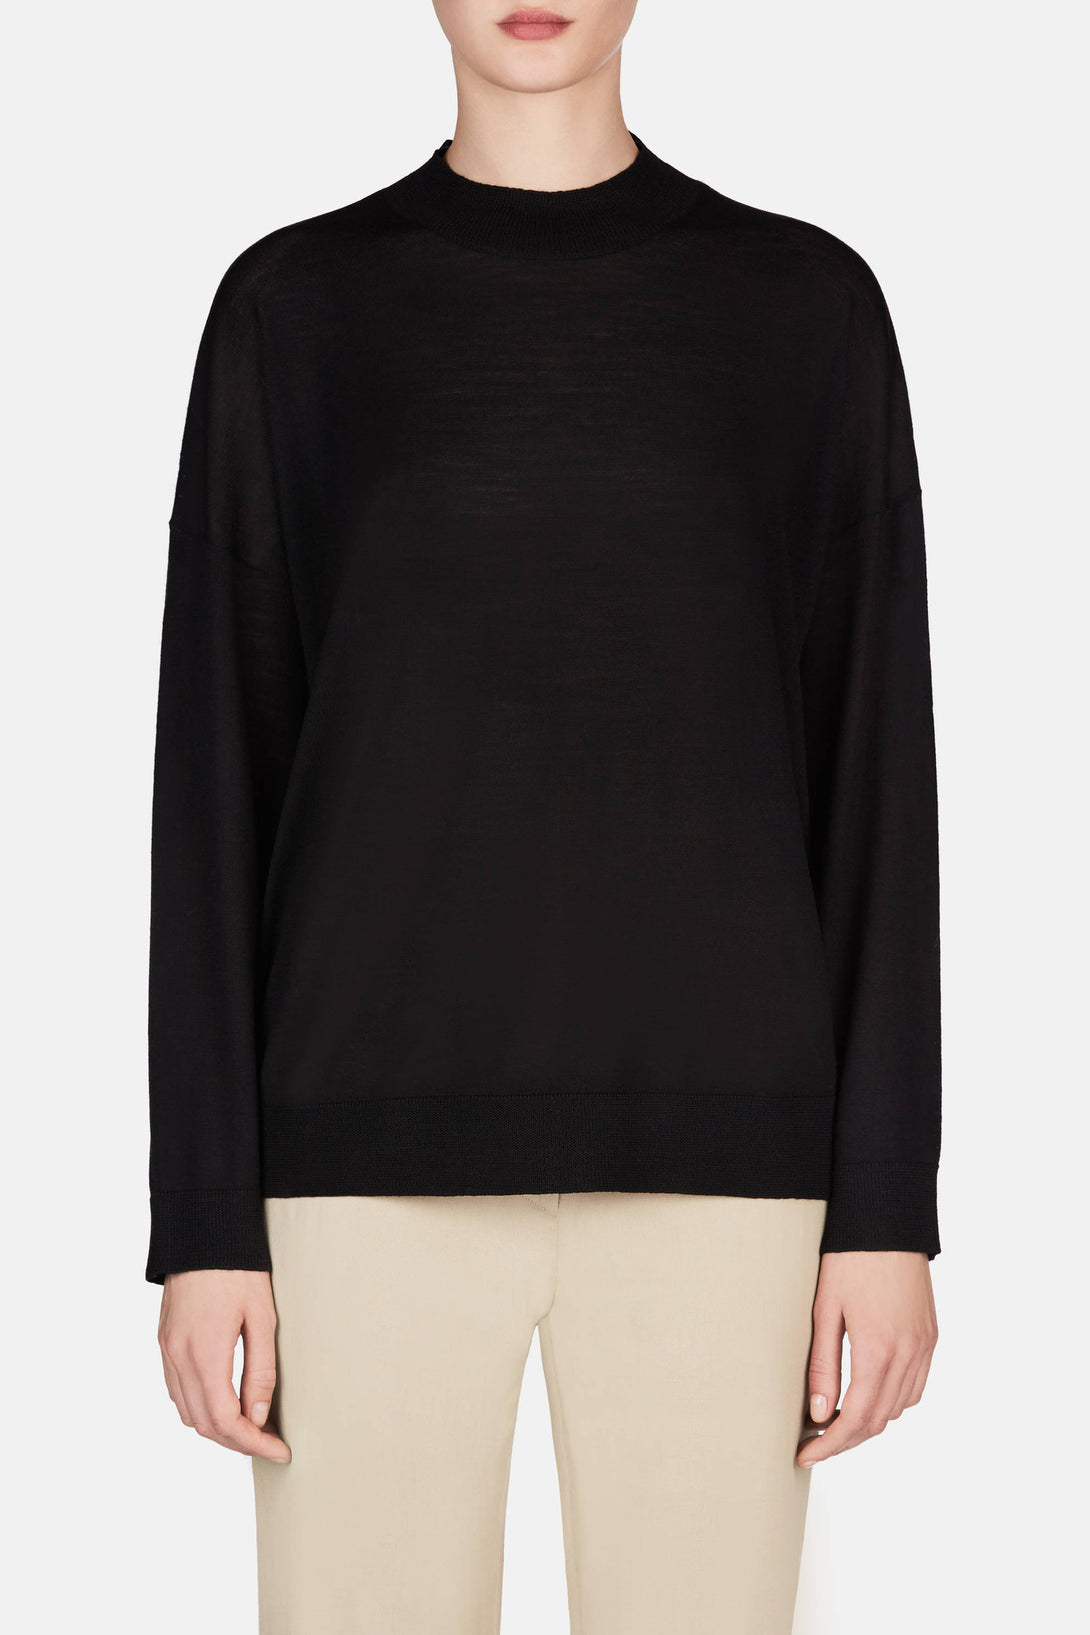 Mock Turtleneck - Black